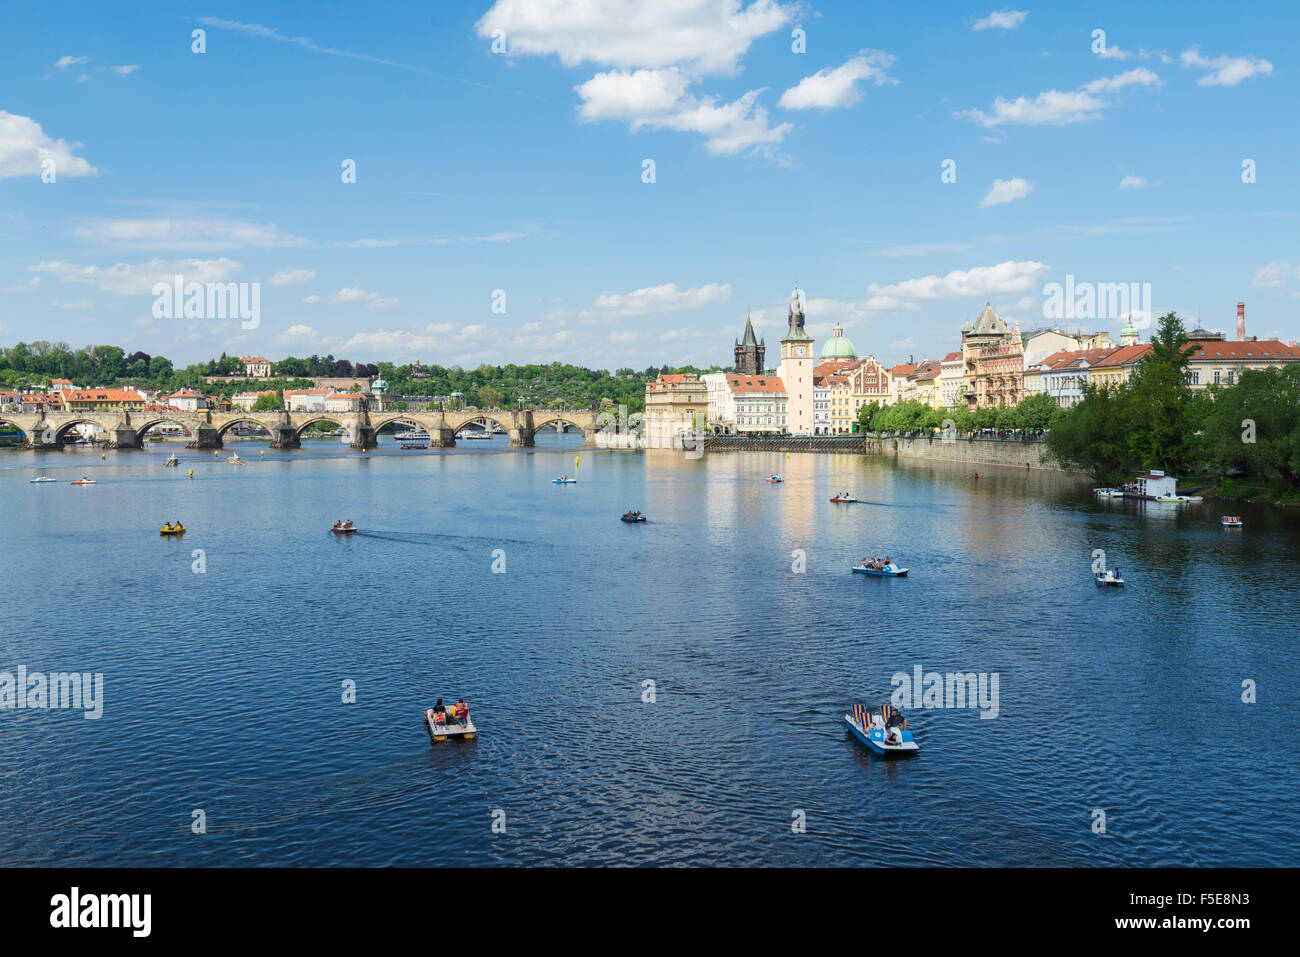 Vltava River and Charles Bridge on a sunny spring day, Prague, Czech Republic, Europe - Stock Image